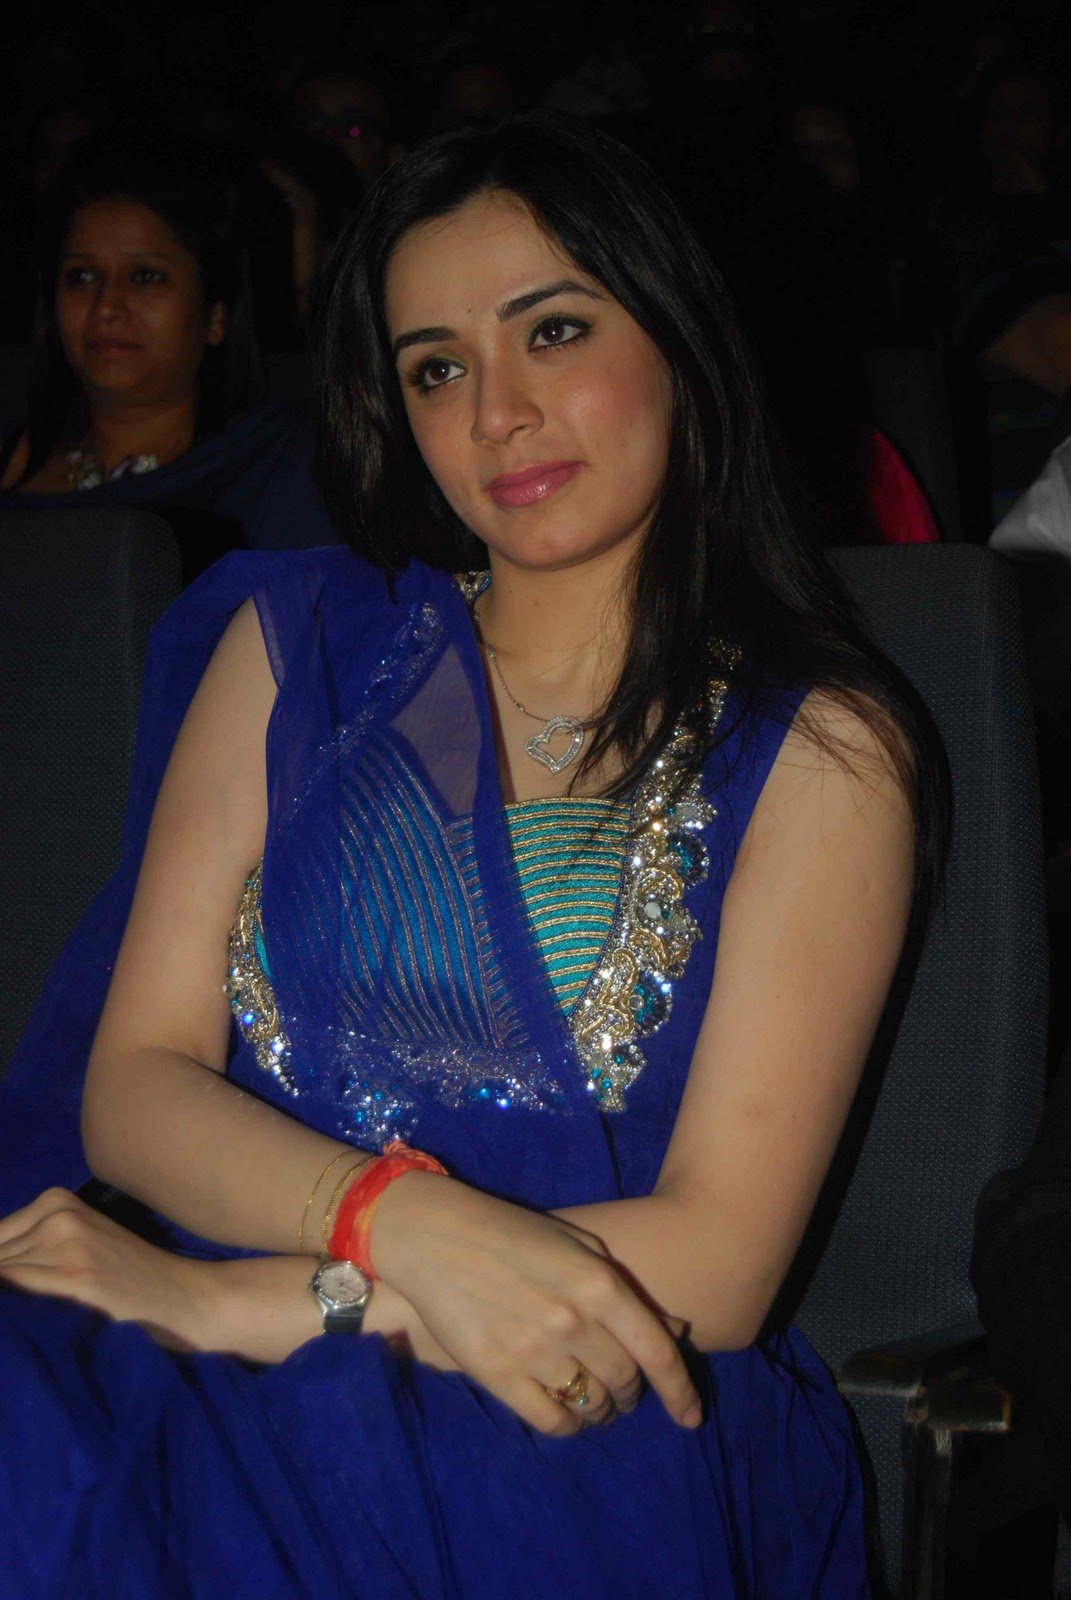 pallavi duggal - photo #10